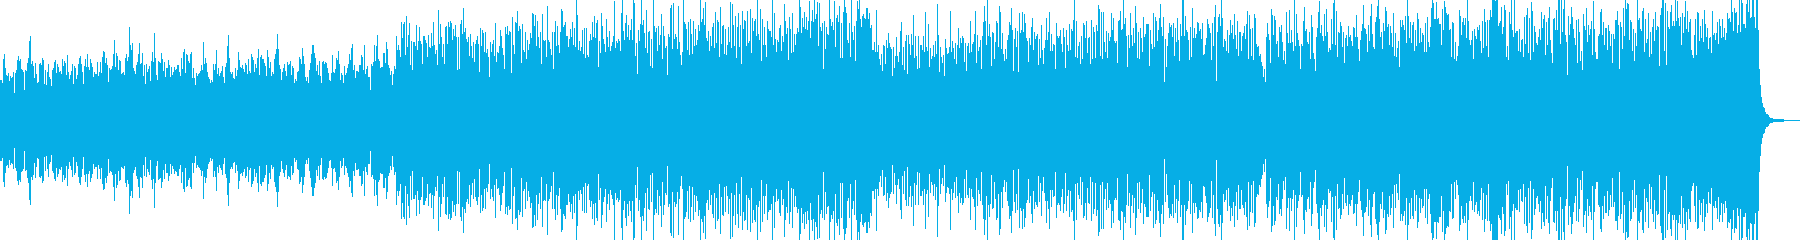 Music box and string / sweet odd time signature dance A's reproduced waveform